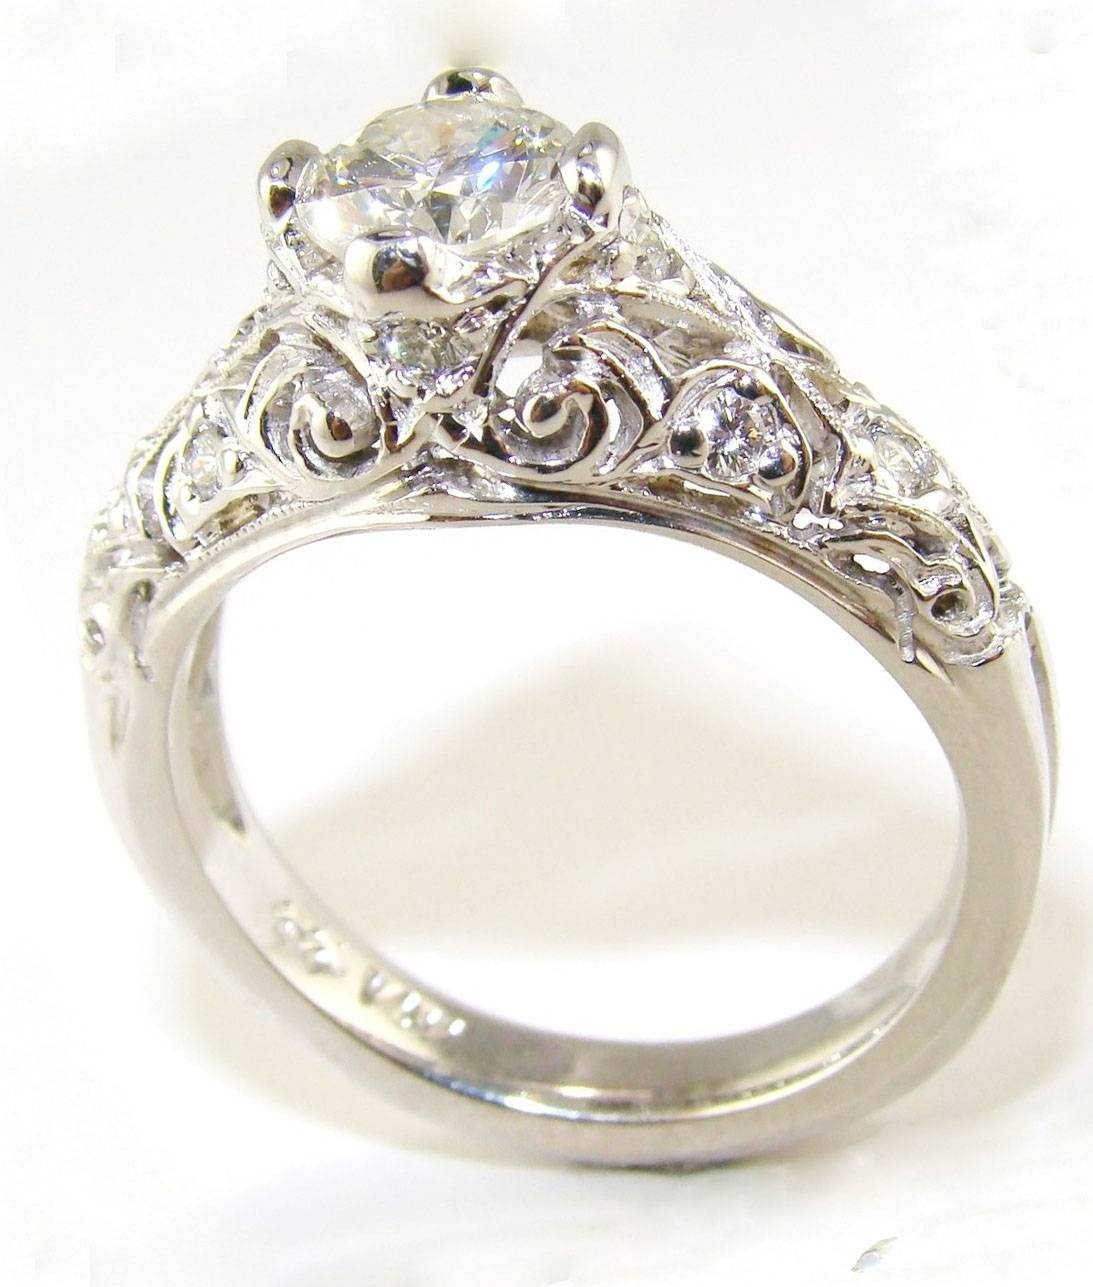 Vintage Diamond Engagement Rings For Women Throughout Womans Engagement Rings (View 9 of 15)